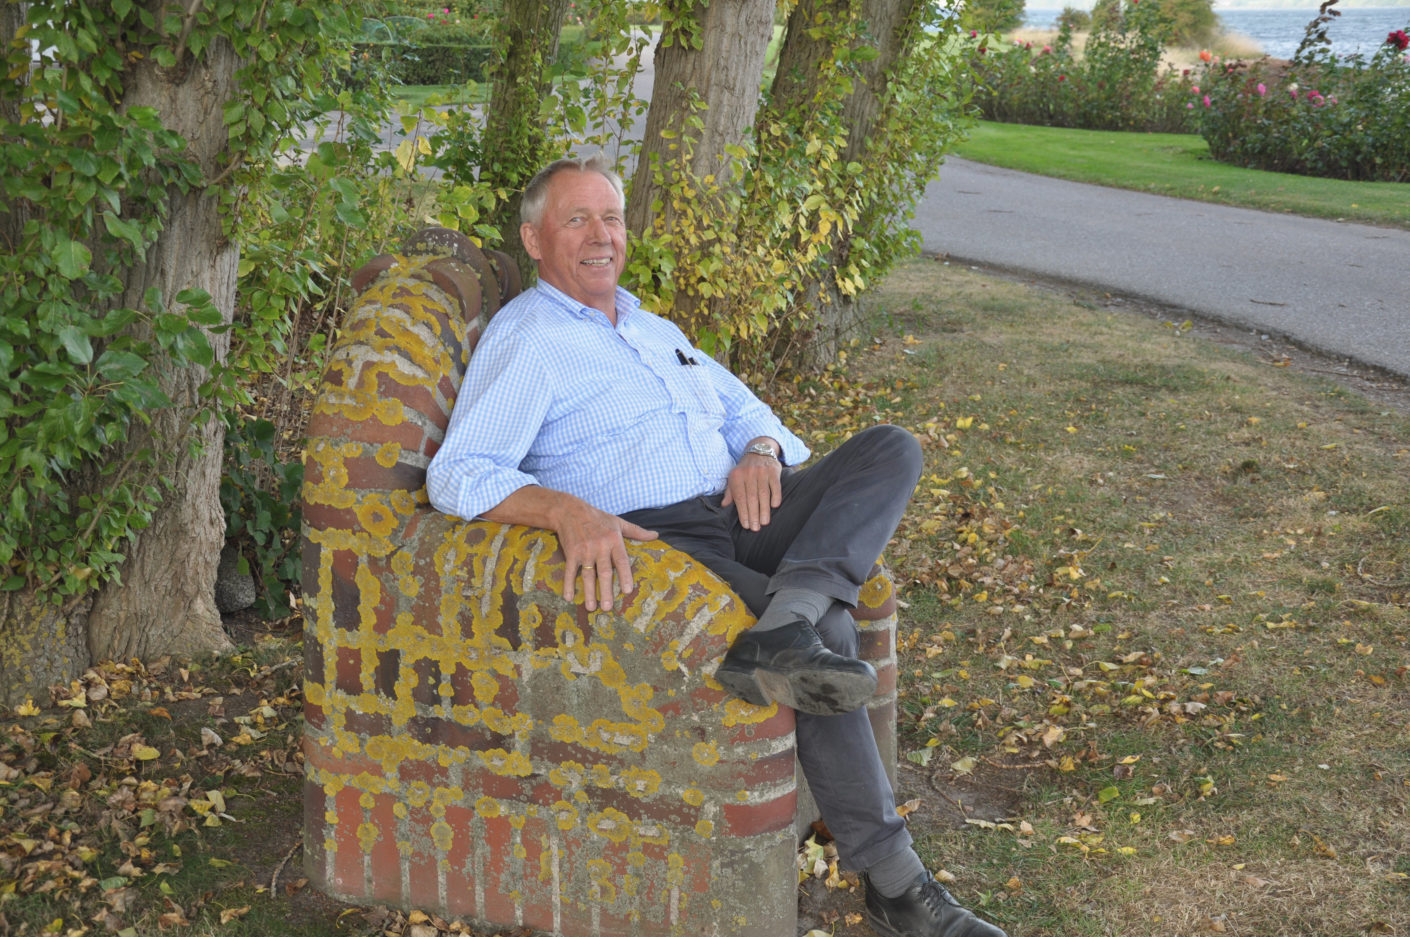 A brick-makers throne is made of sturdy masonry and Christian Petersen knows how to take to it.